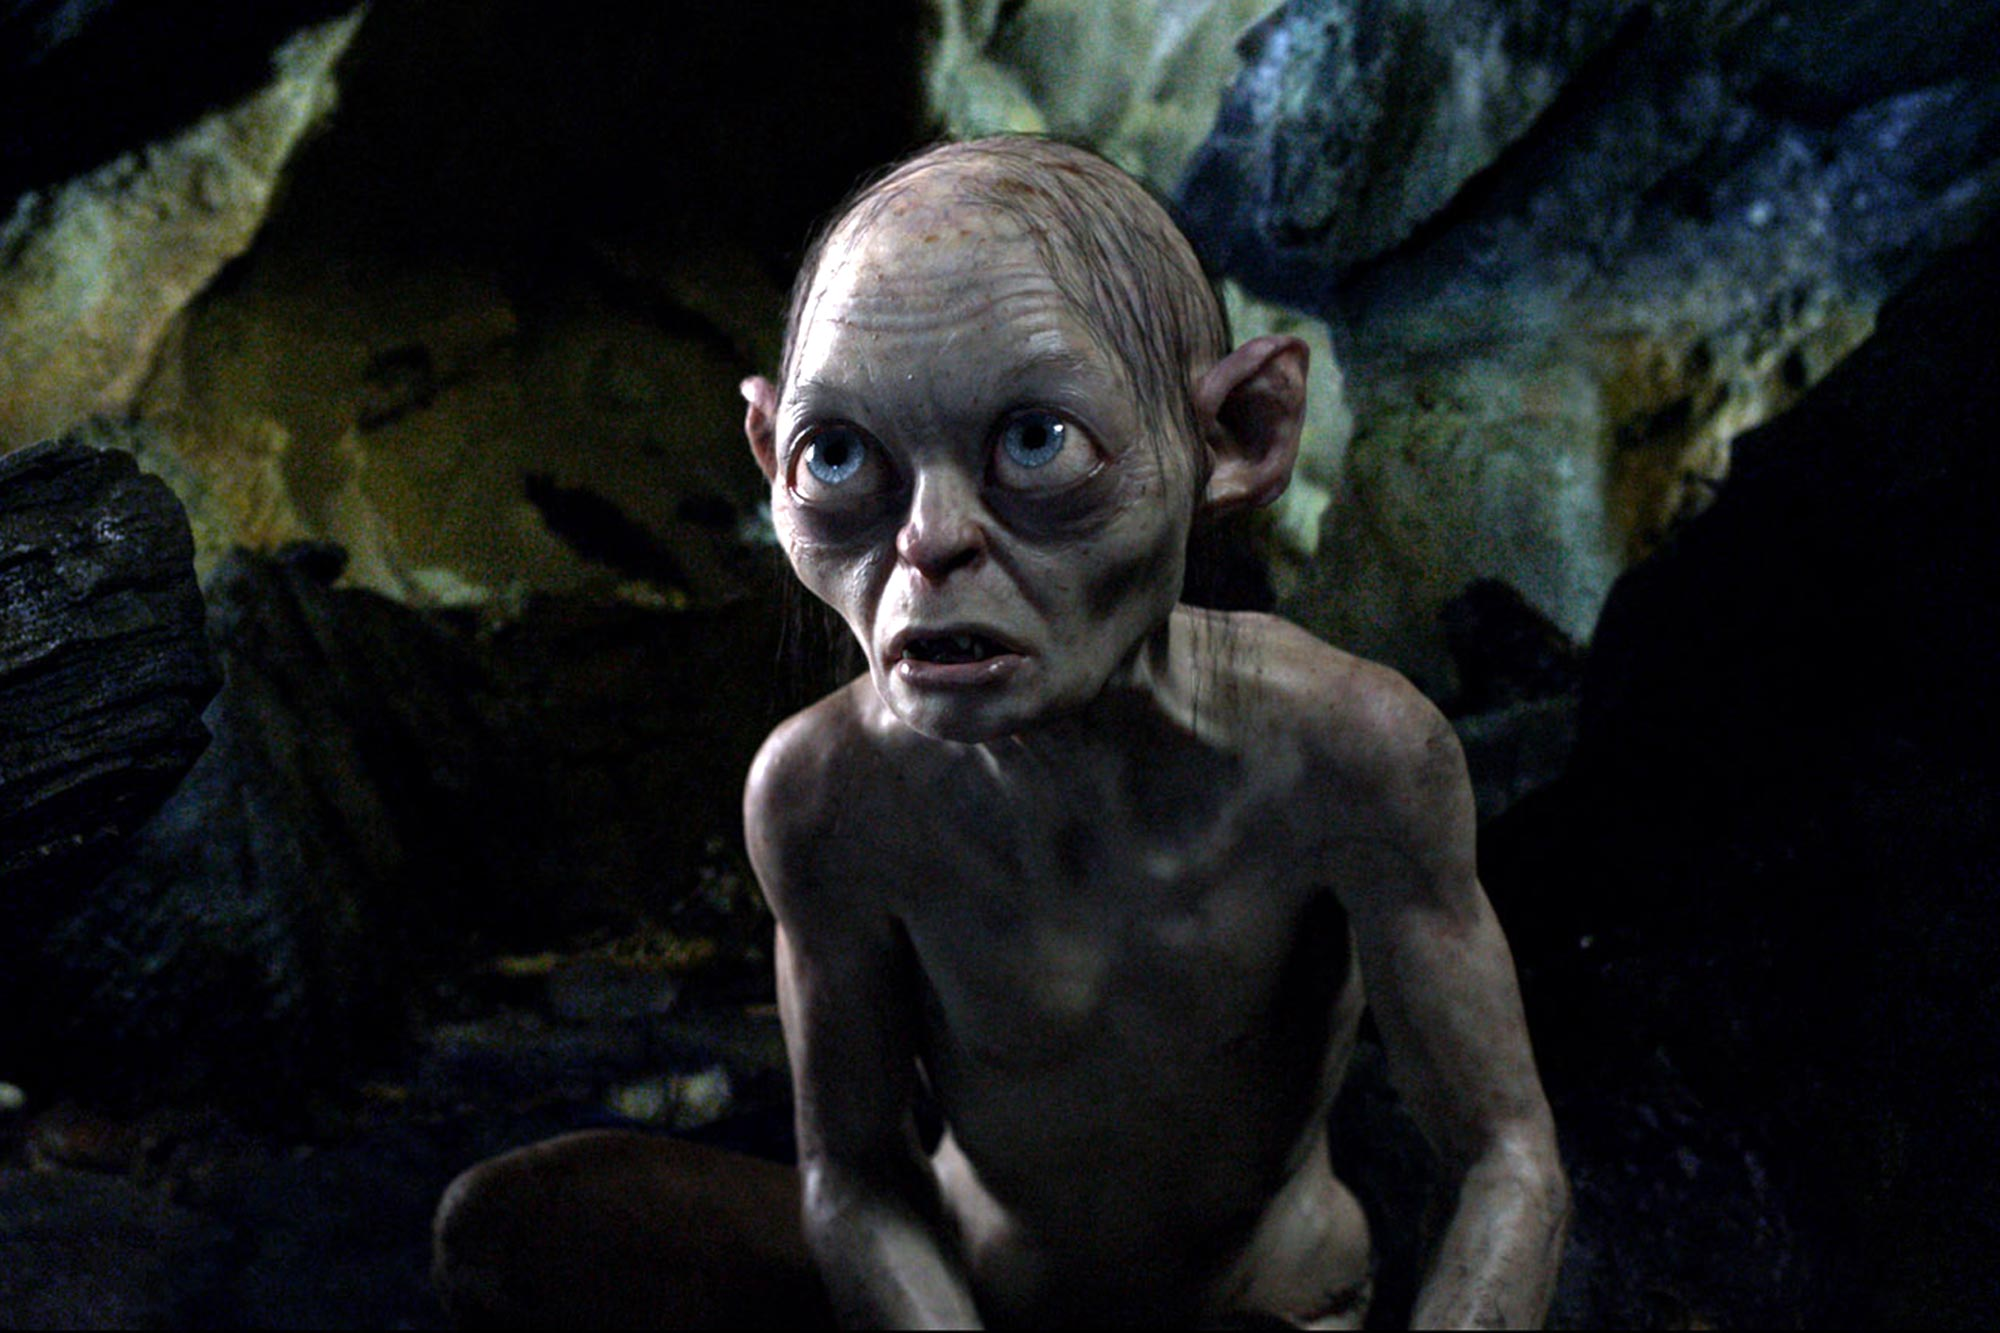 THE HOBBIT: AN UNEXPECTED JOURNEY Gollum